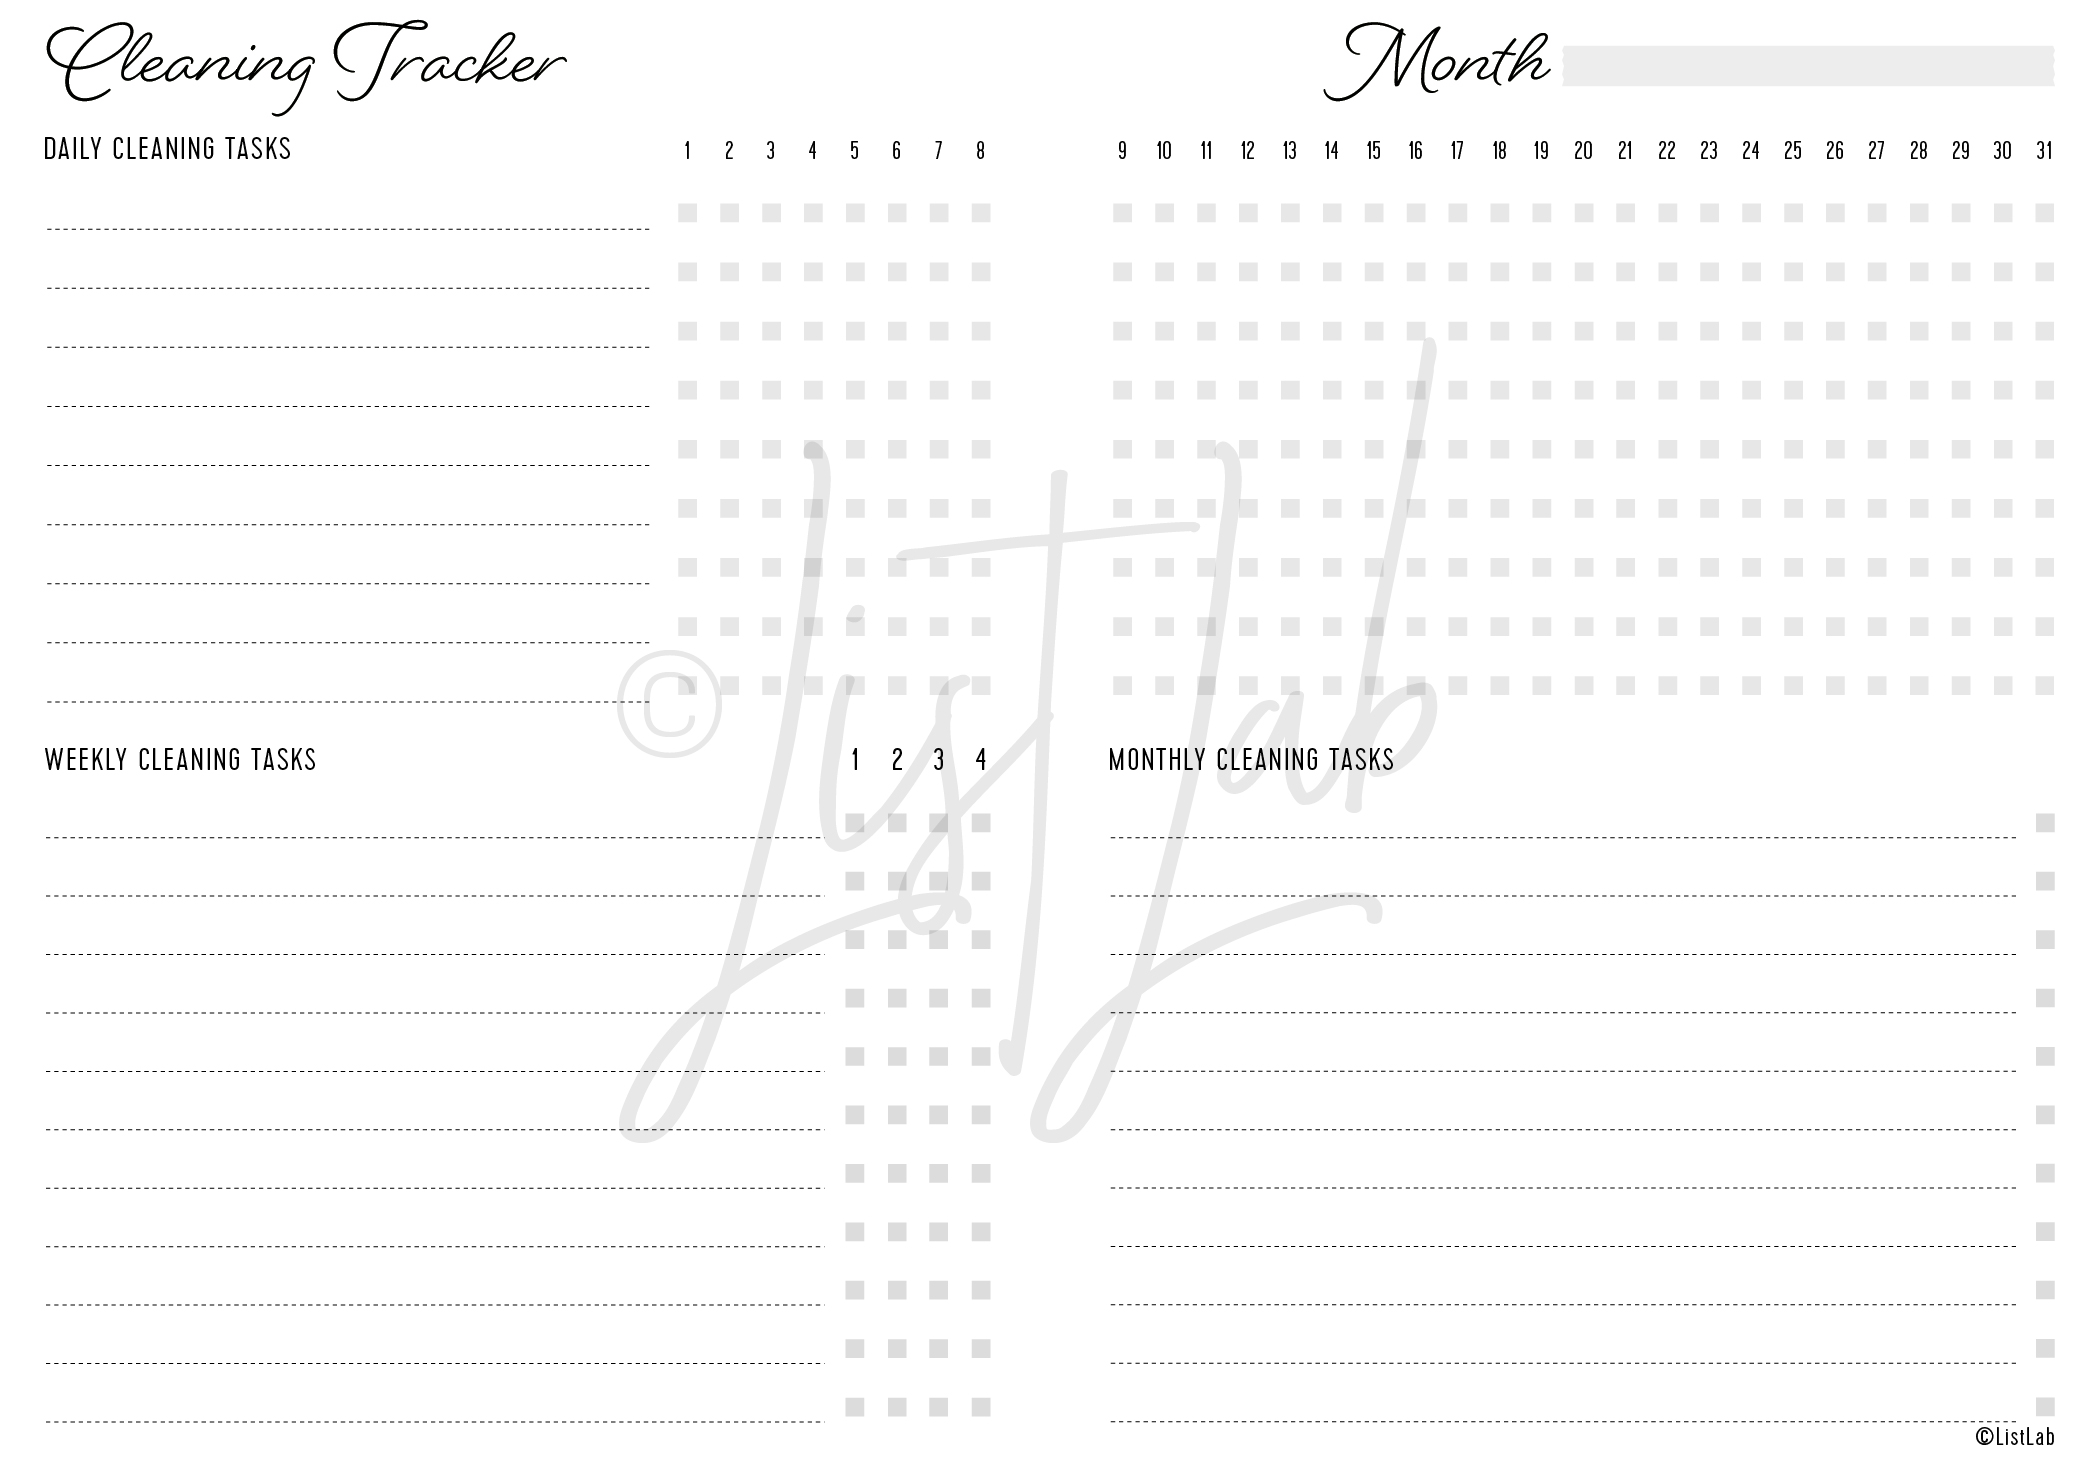 2-PAGE CLEANING TRACKER